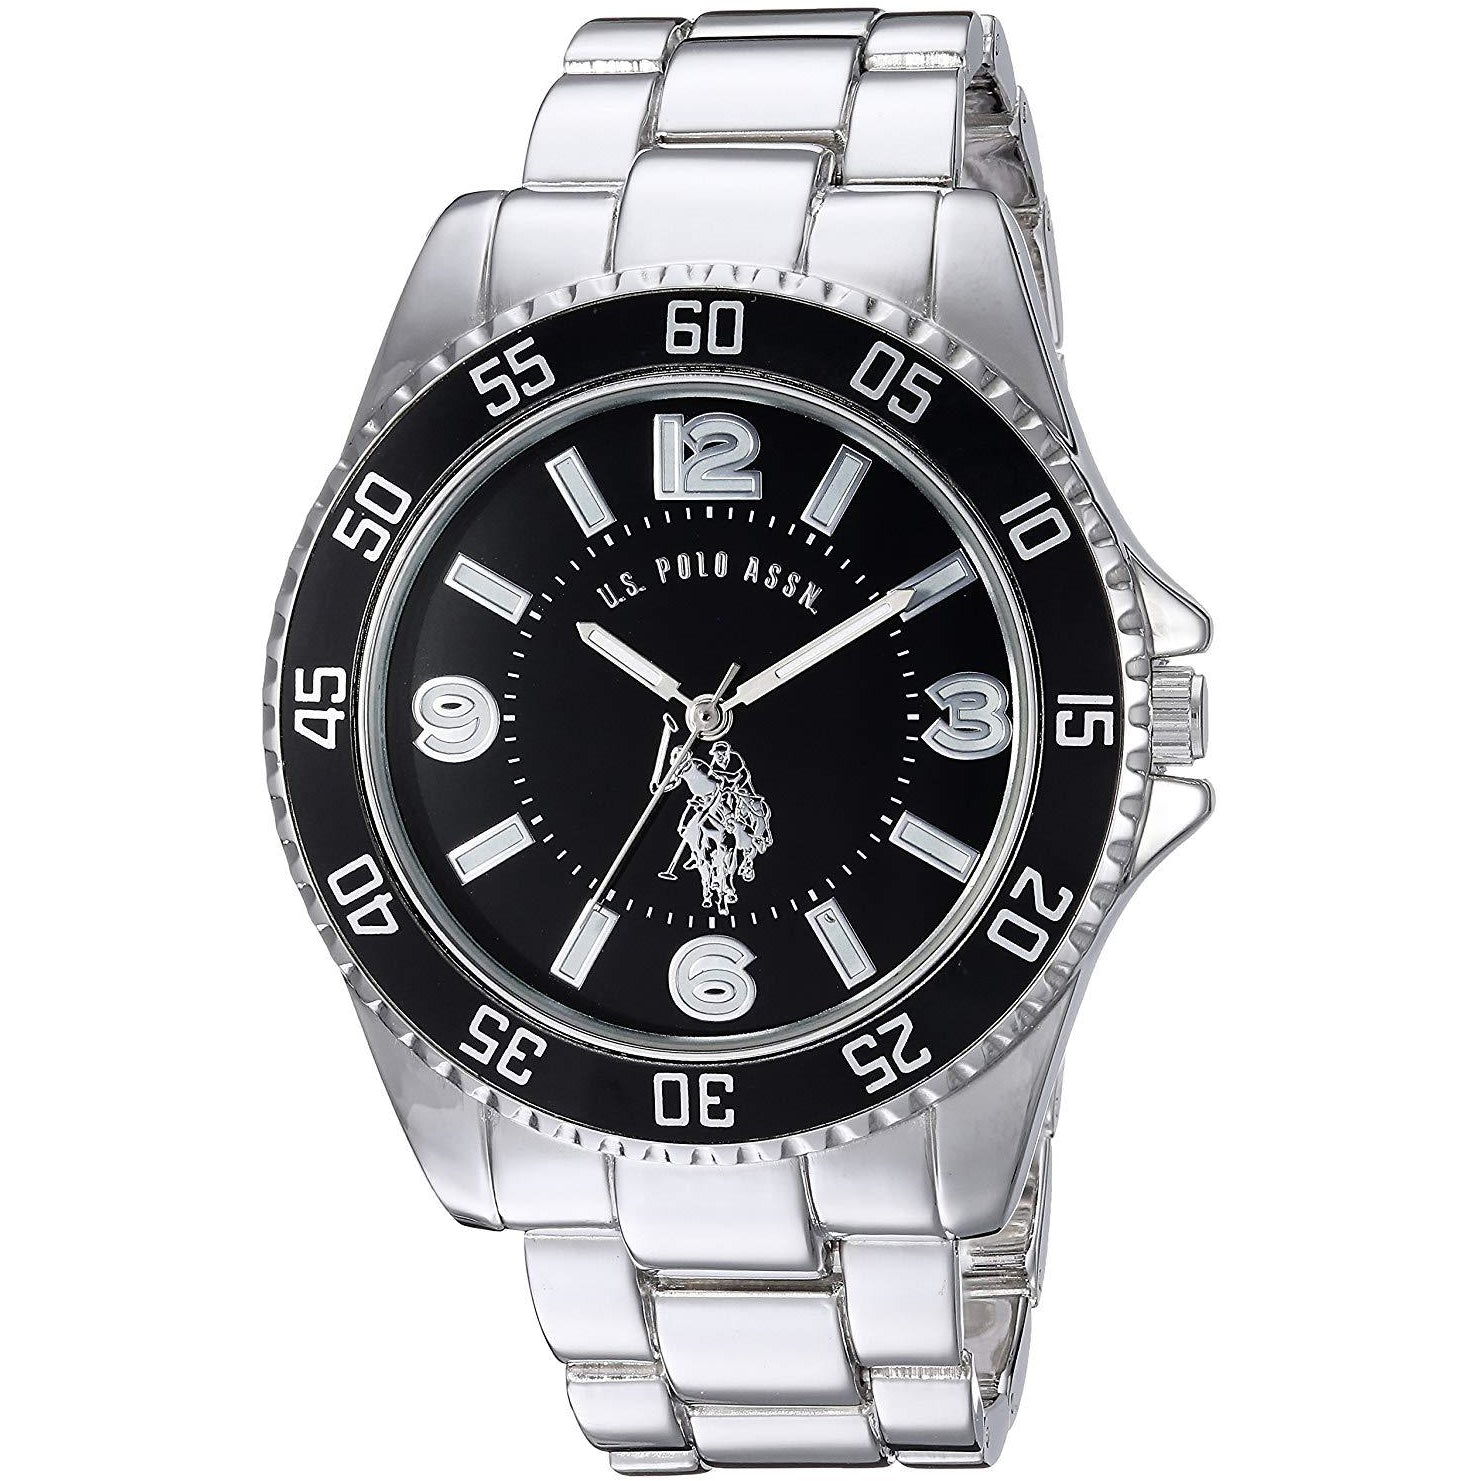 U.S. Polo Assn. USC80515 Men's Silver-Toned Watch with a Black Dial